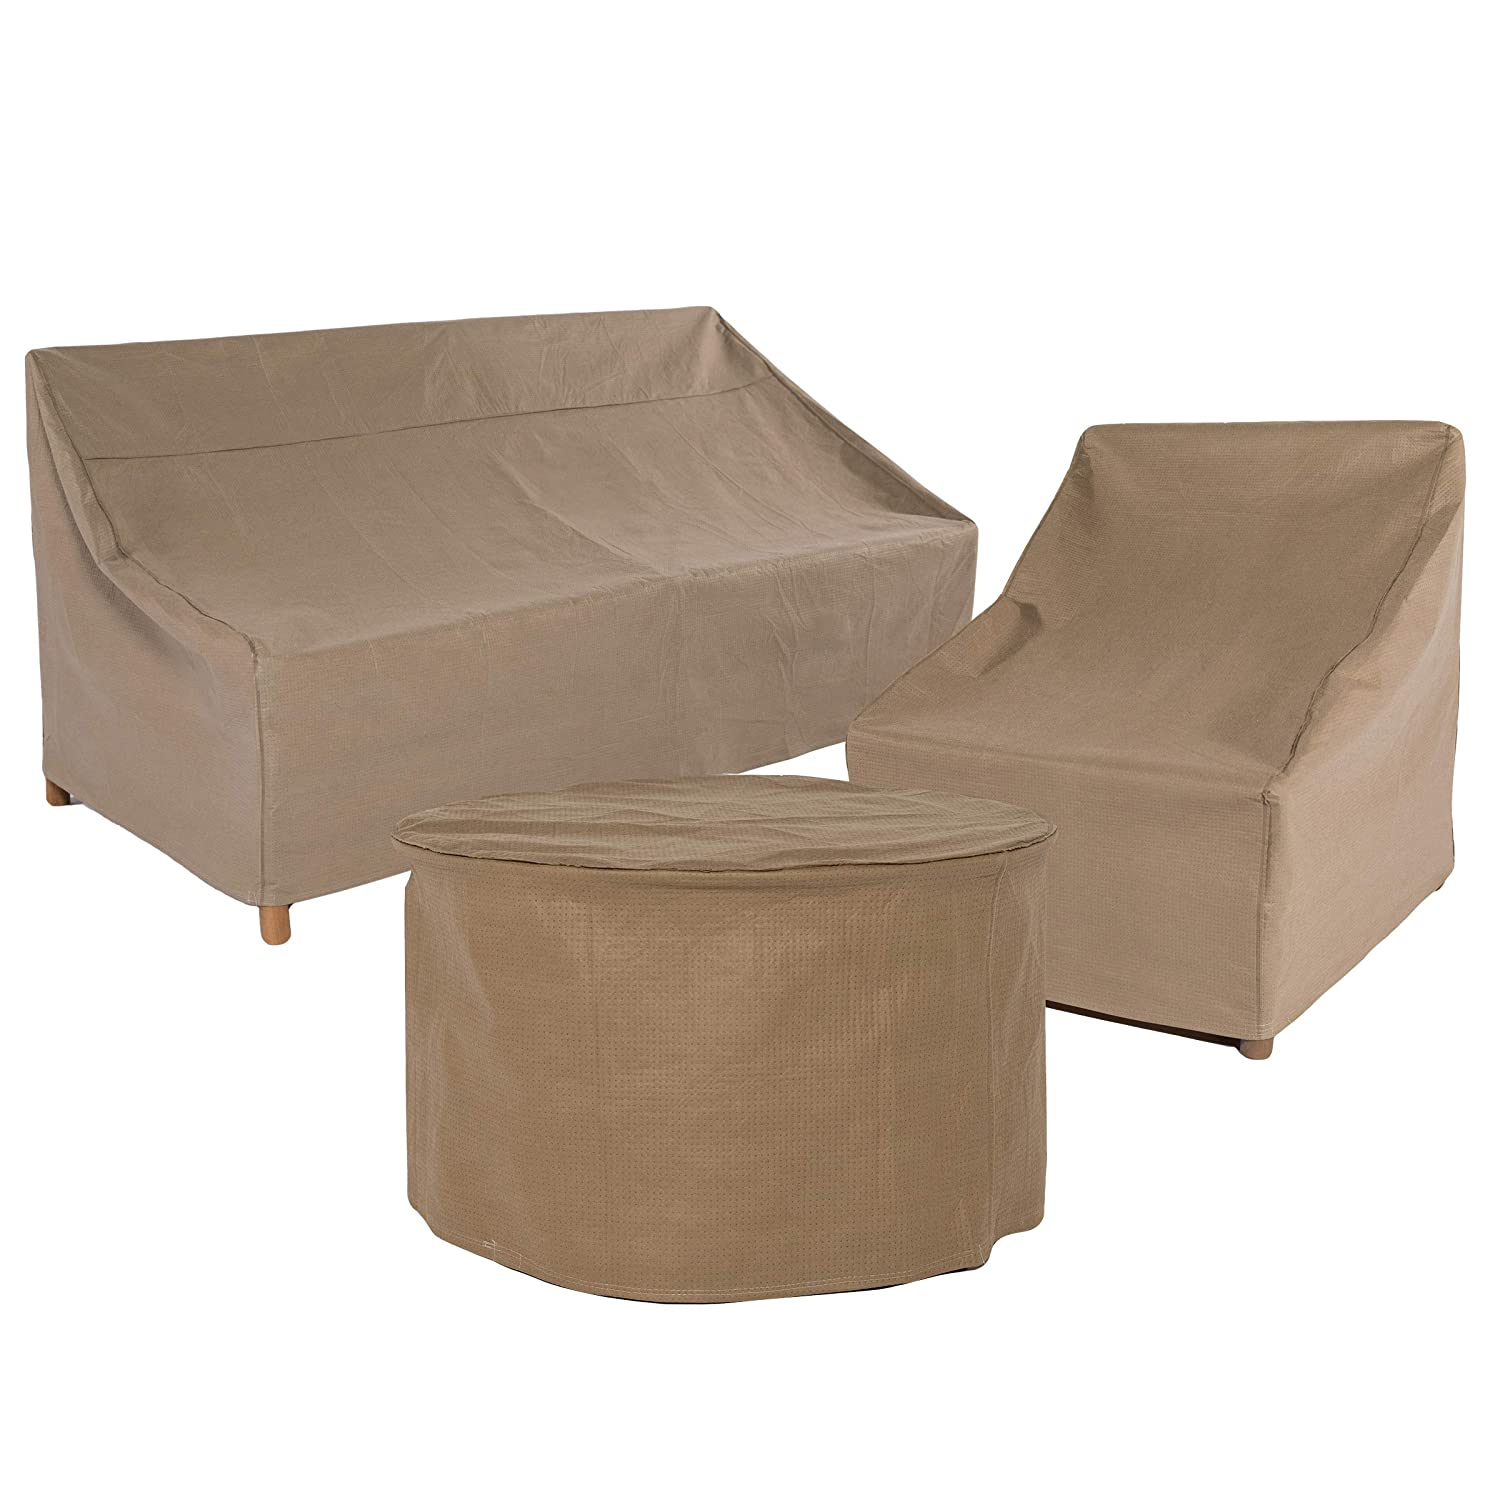 Duck Covers Essential Square Patio Table with Chairs Cover 76-Inch